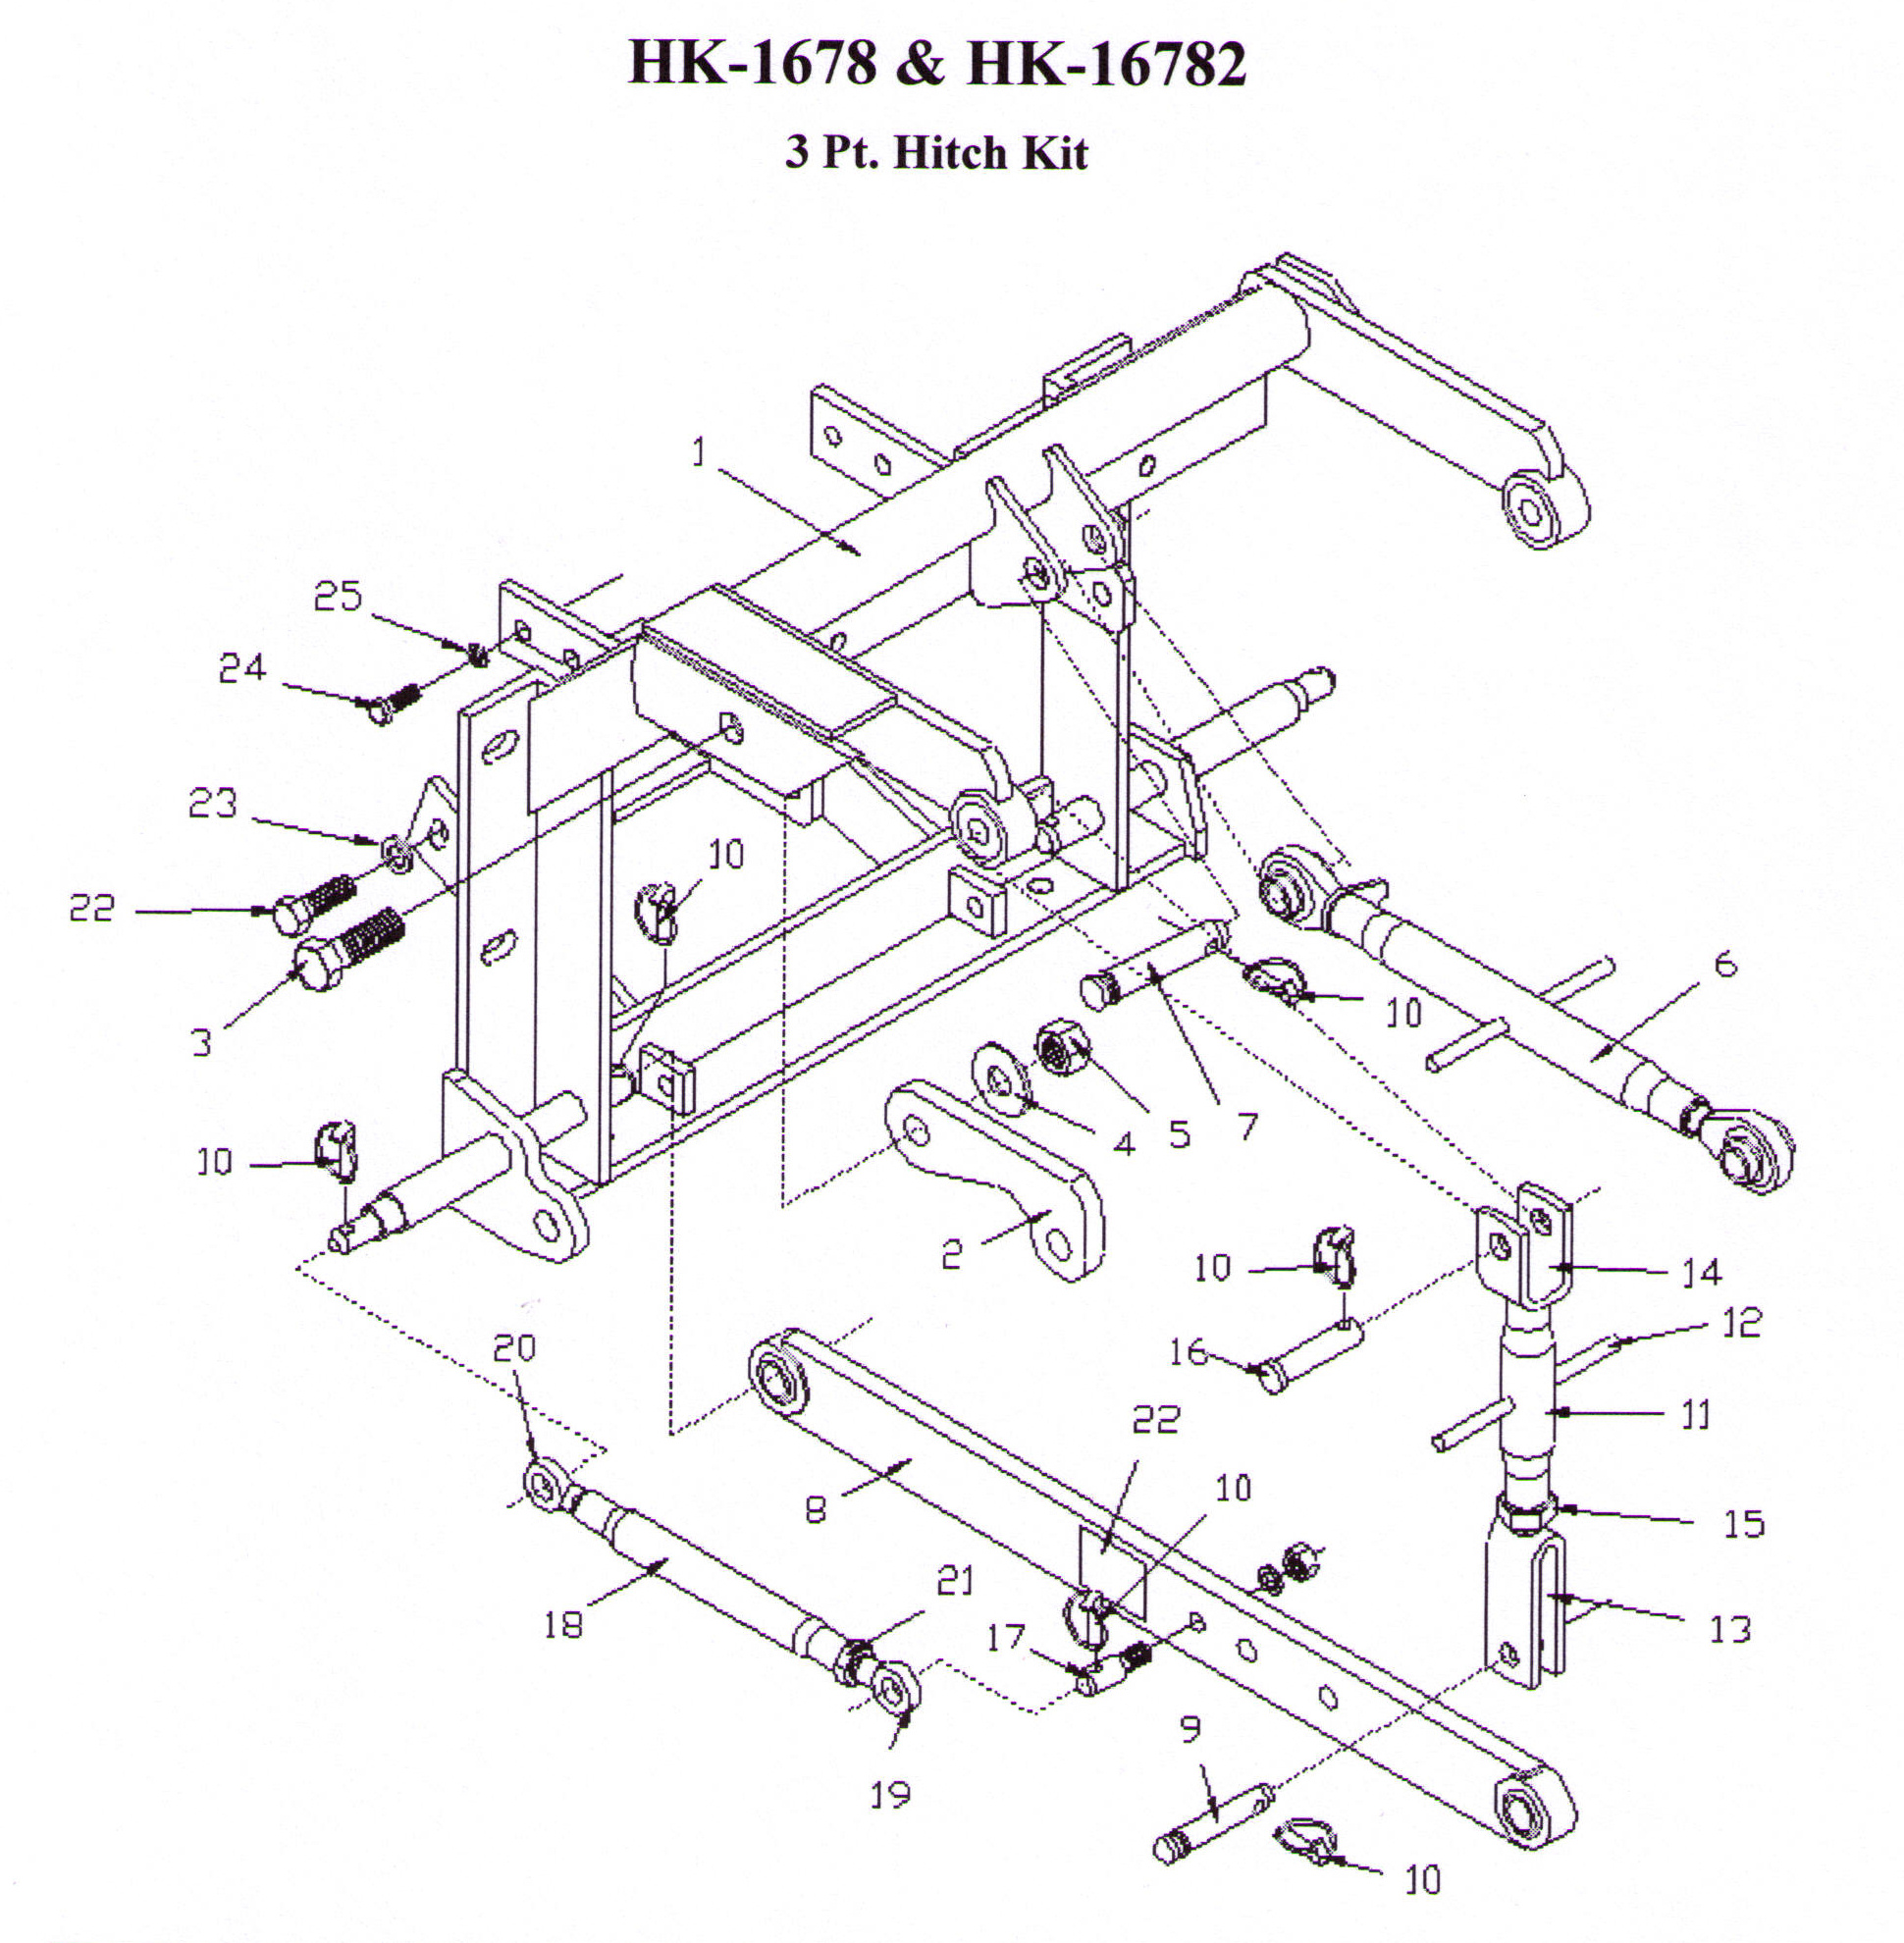 3 Point Hitch Plans